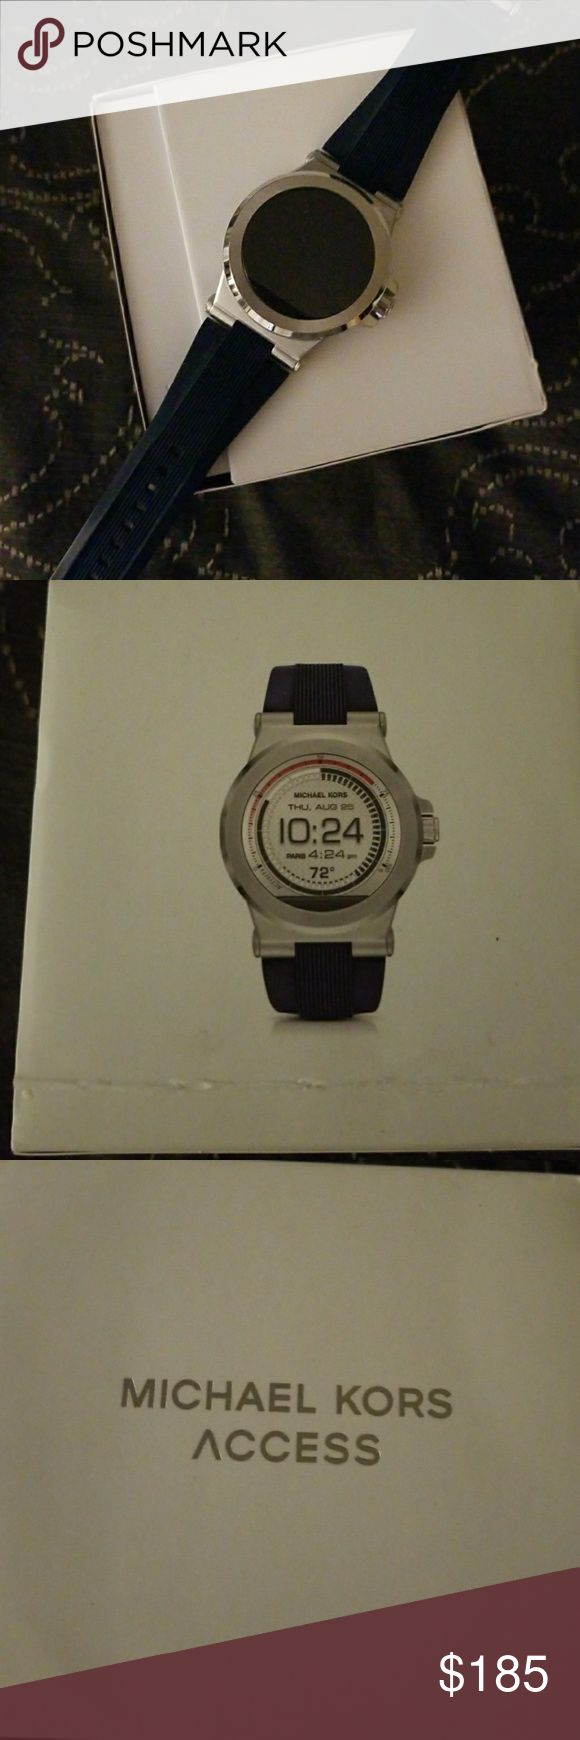 Men's Michael Kors Smartwatch Good condition,  Navy Blue, works better for Android users Michael Kors Accessories Watches